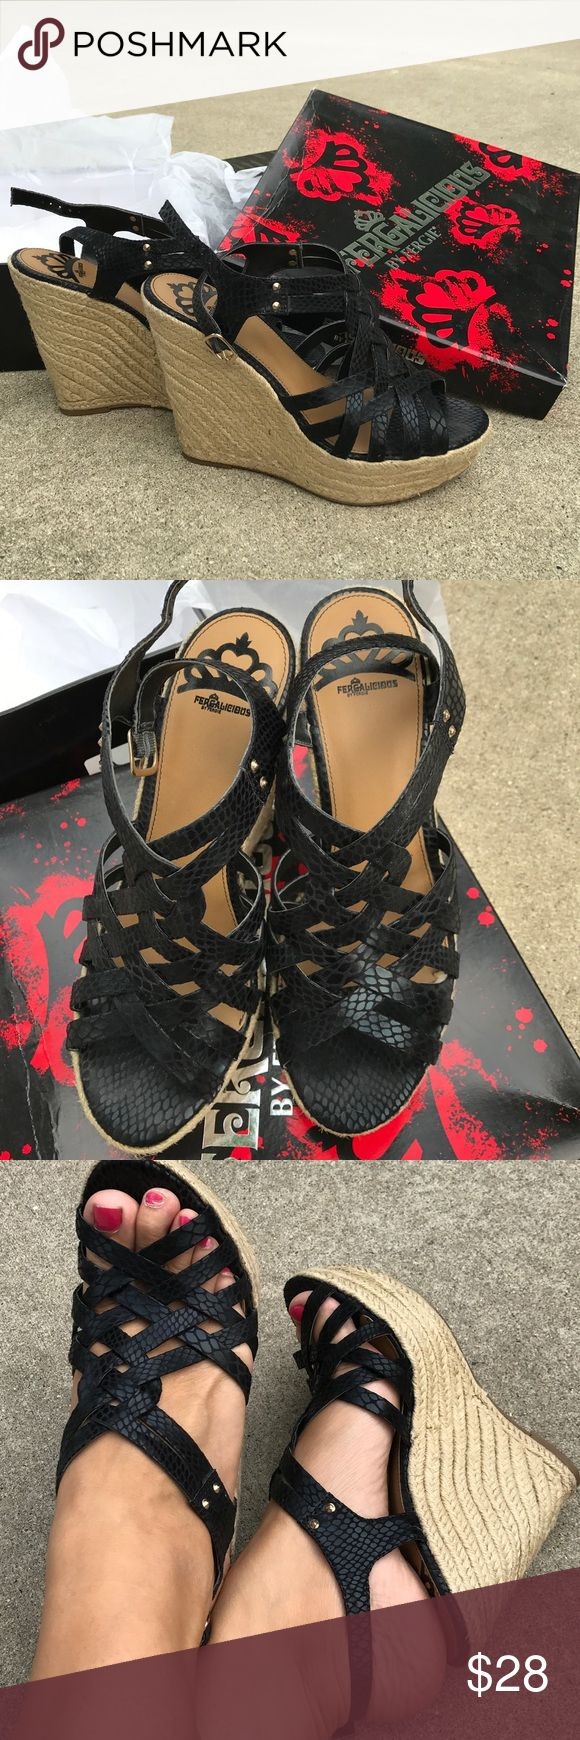 """Fergalicious by Fergie - 9.5 black sandals Worn less than a handful of times. Beautiful black faux snakeskin print platforms. Super comfortable! Size 9.5 fits true to size. Comes from a smoke free, dog friendly home Measurements - Heel Height-4.50"""" (at the heights point)   Platform-3/4"""" Fergalicious Shoes"""